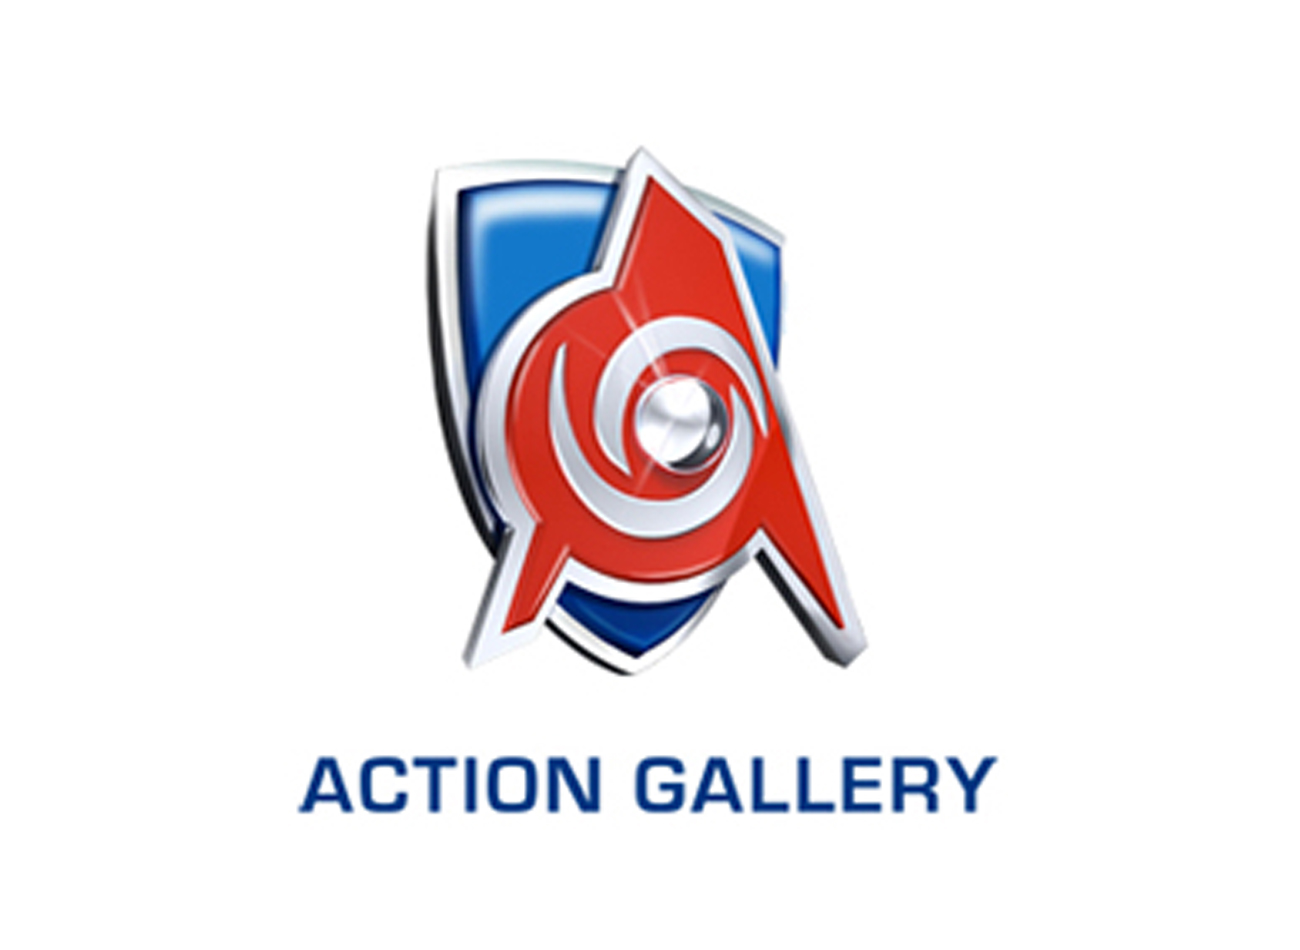 action-gallery-3d-iconic-logo-designers-agent-orange-south-african-best-creative-companies.jpg